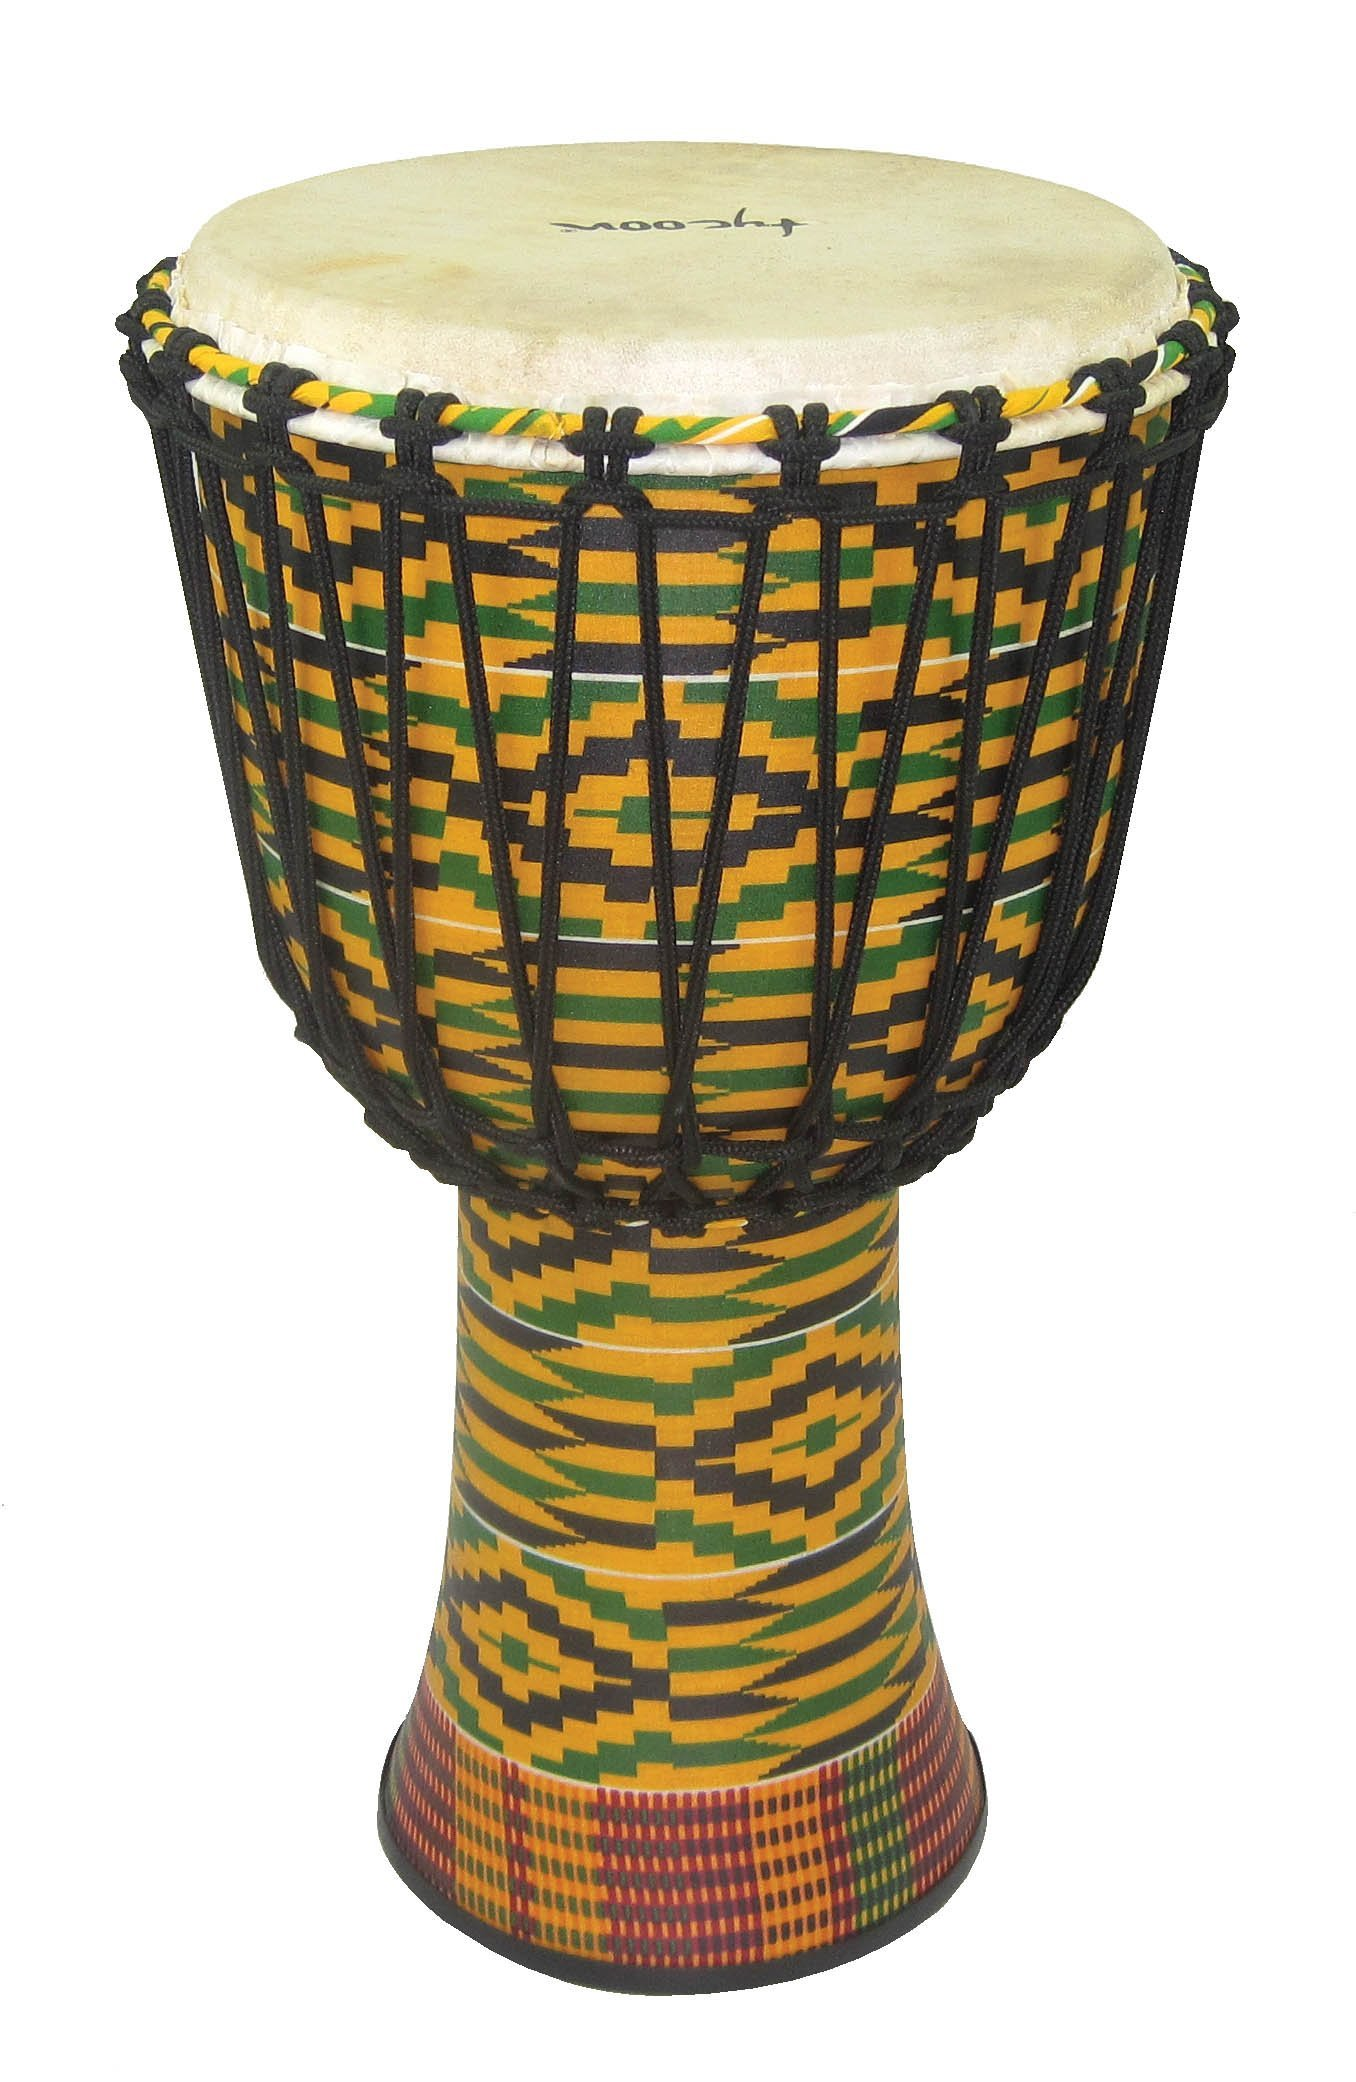 Tycoon Percussion TFAJ-10K 10 Fiberglass Rope Tuned Djembe, Kente Finish by Tycoon Percussion (Image #1)